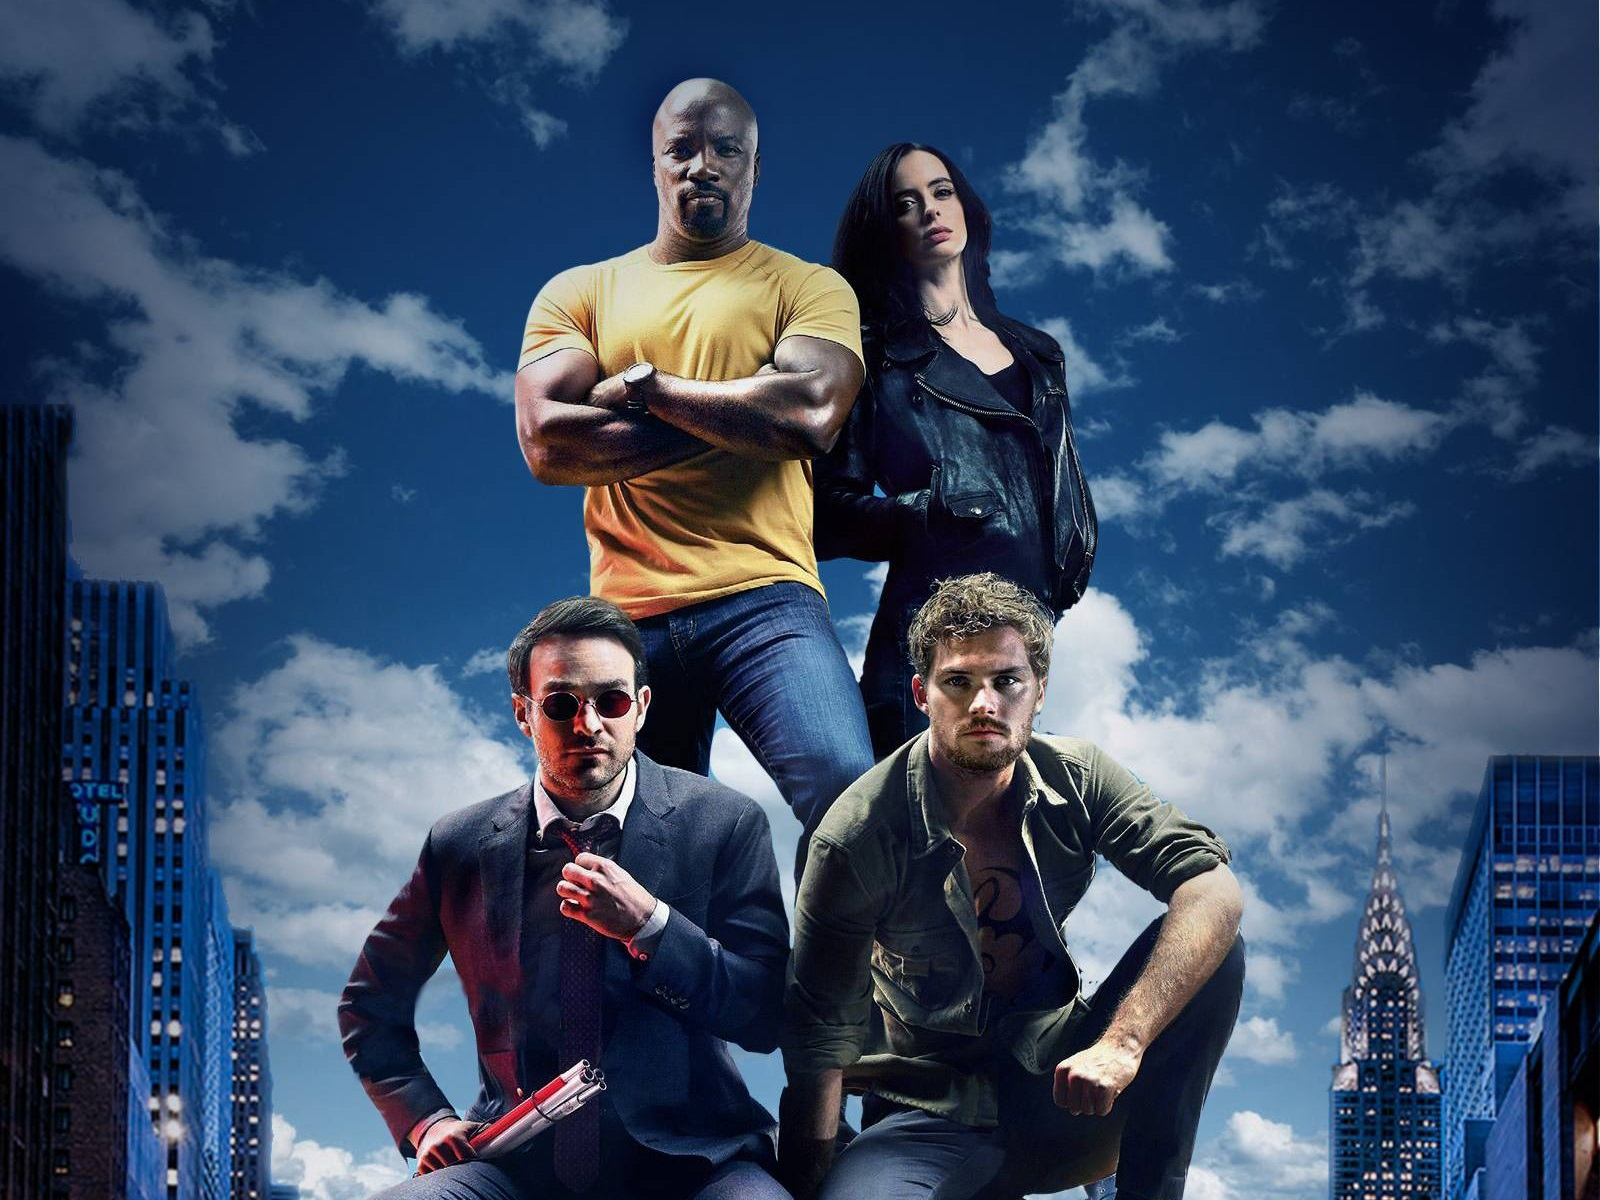 The Defenders Wallpaper and Background 1600x1200 ID819634 1600x1200